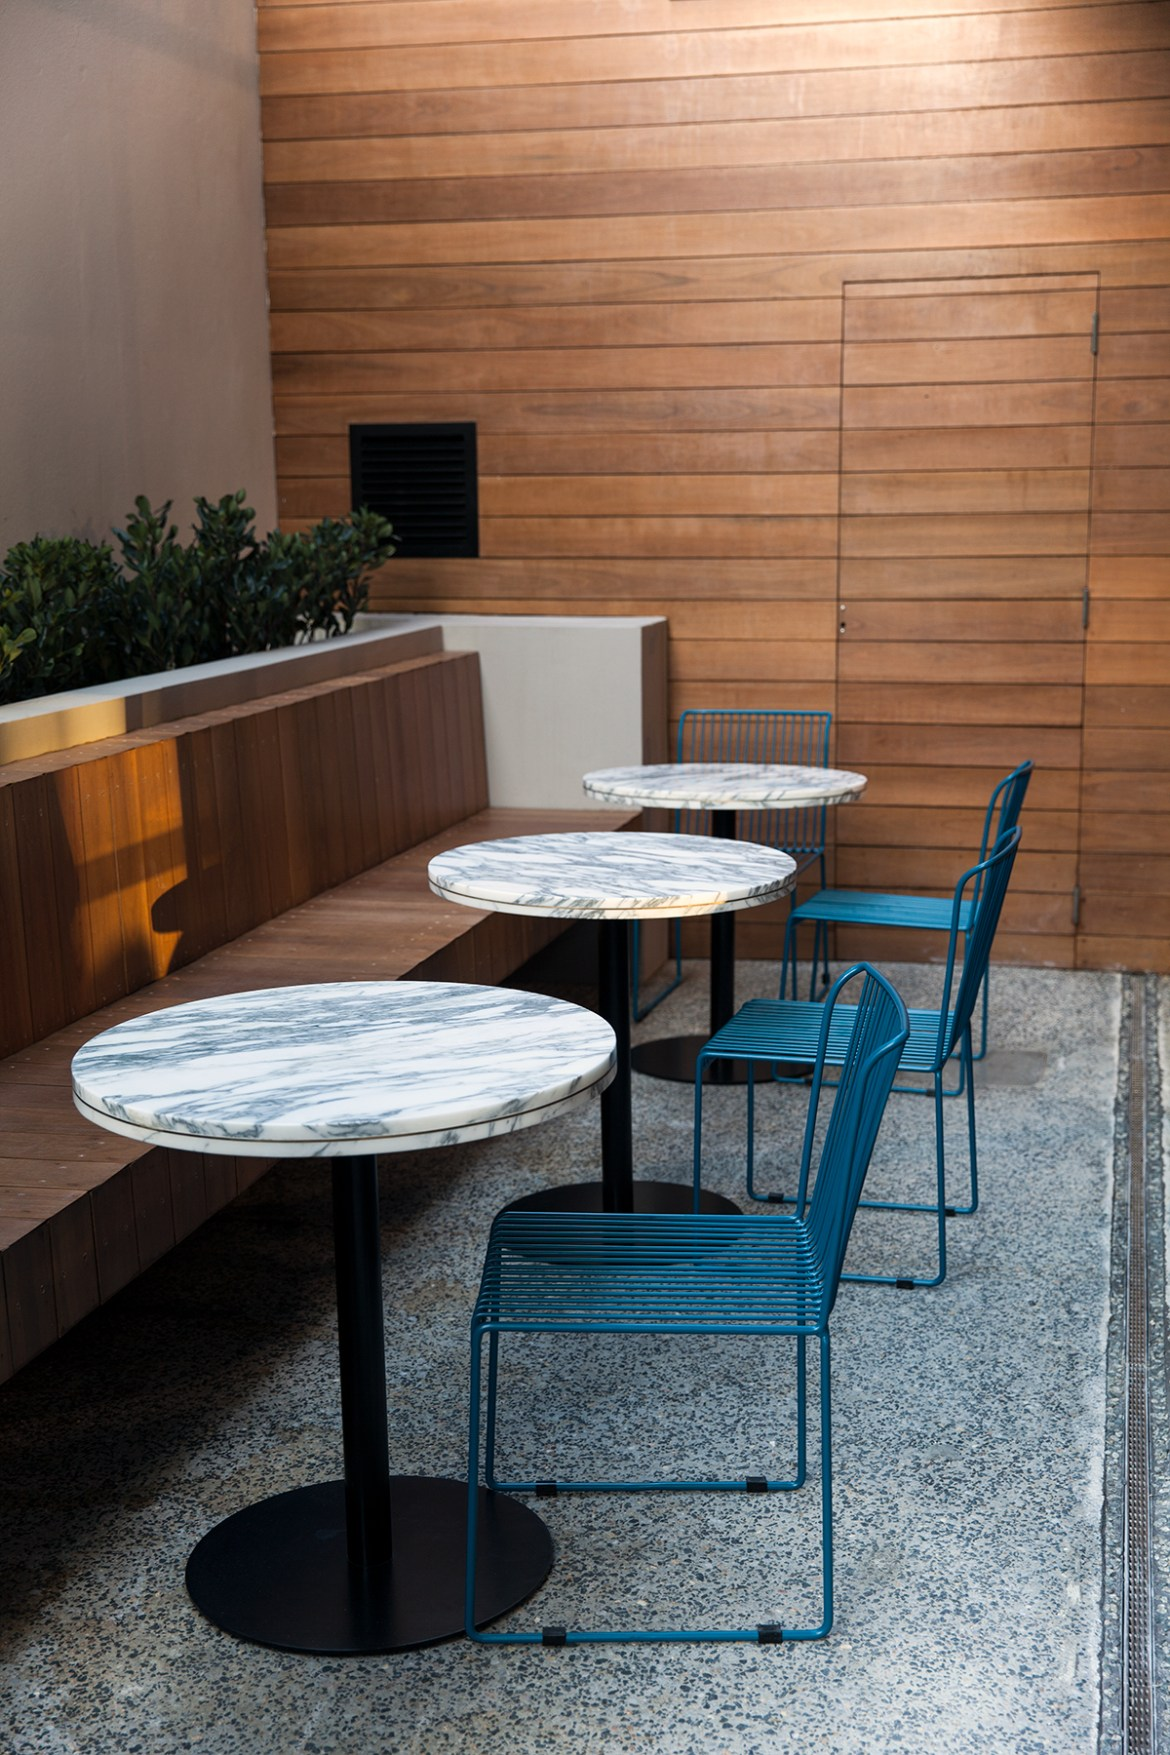 Tribe Hotel Perth marble tables, Jenelle from travel blog Inspiring Wit boutique hotel profile